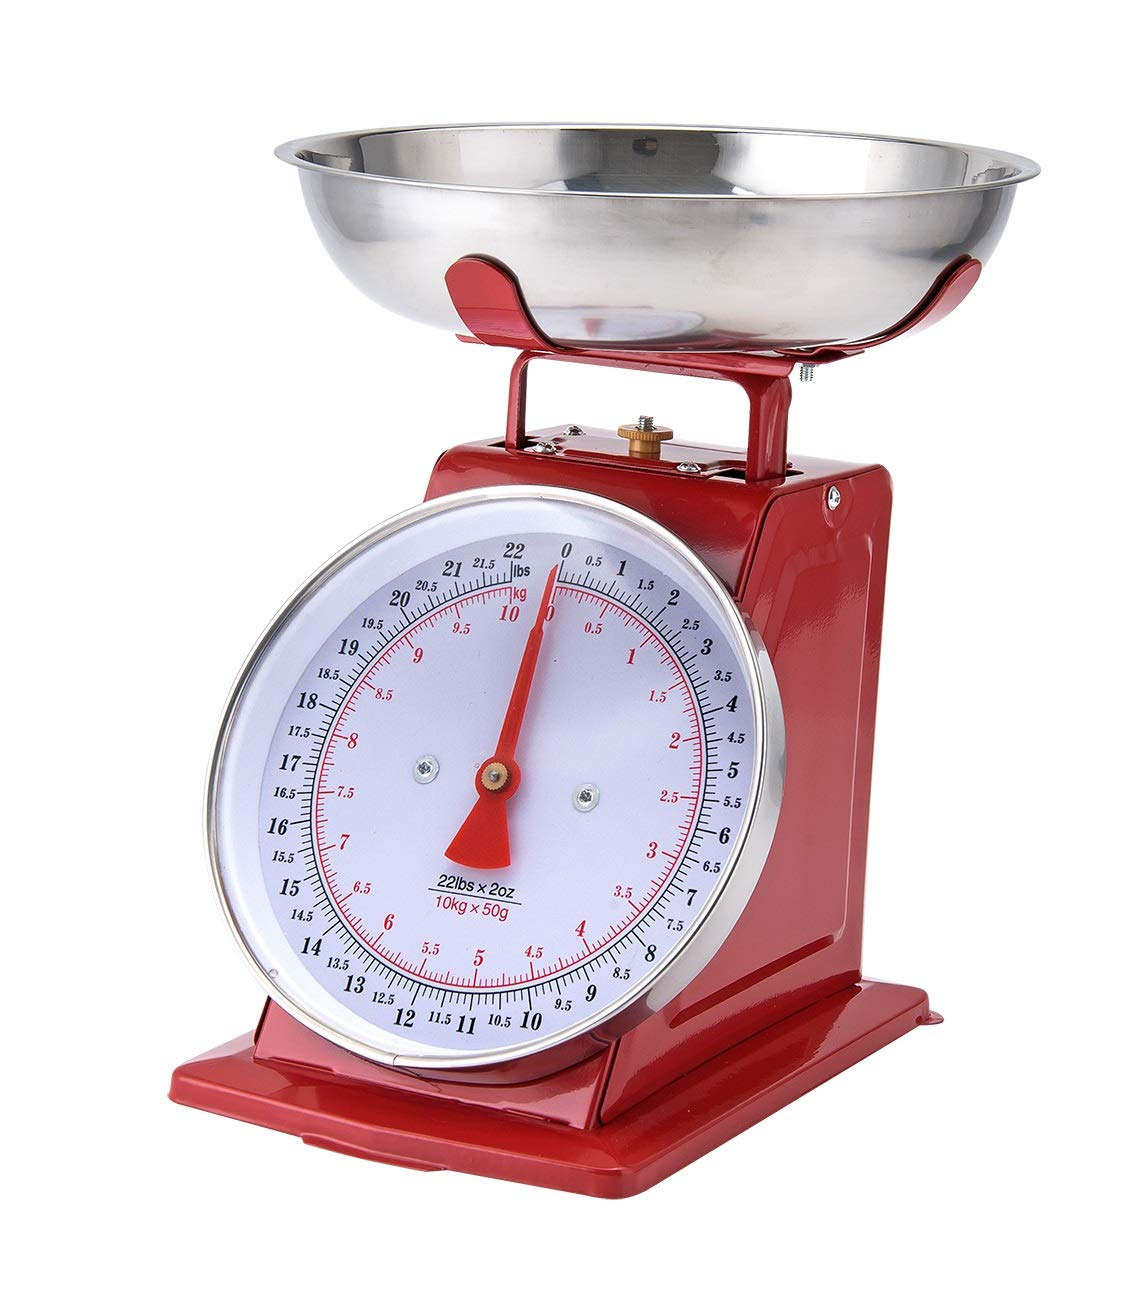 Kitchen Scale White Metal With A Stainless Steel Tray (22-Pound) (RED) by Chefcaptain